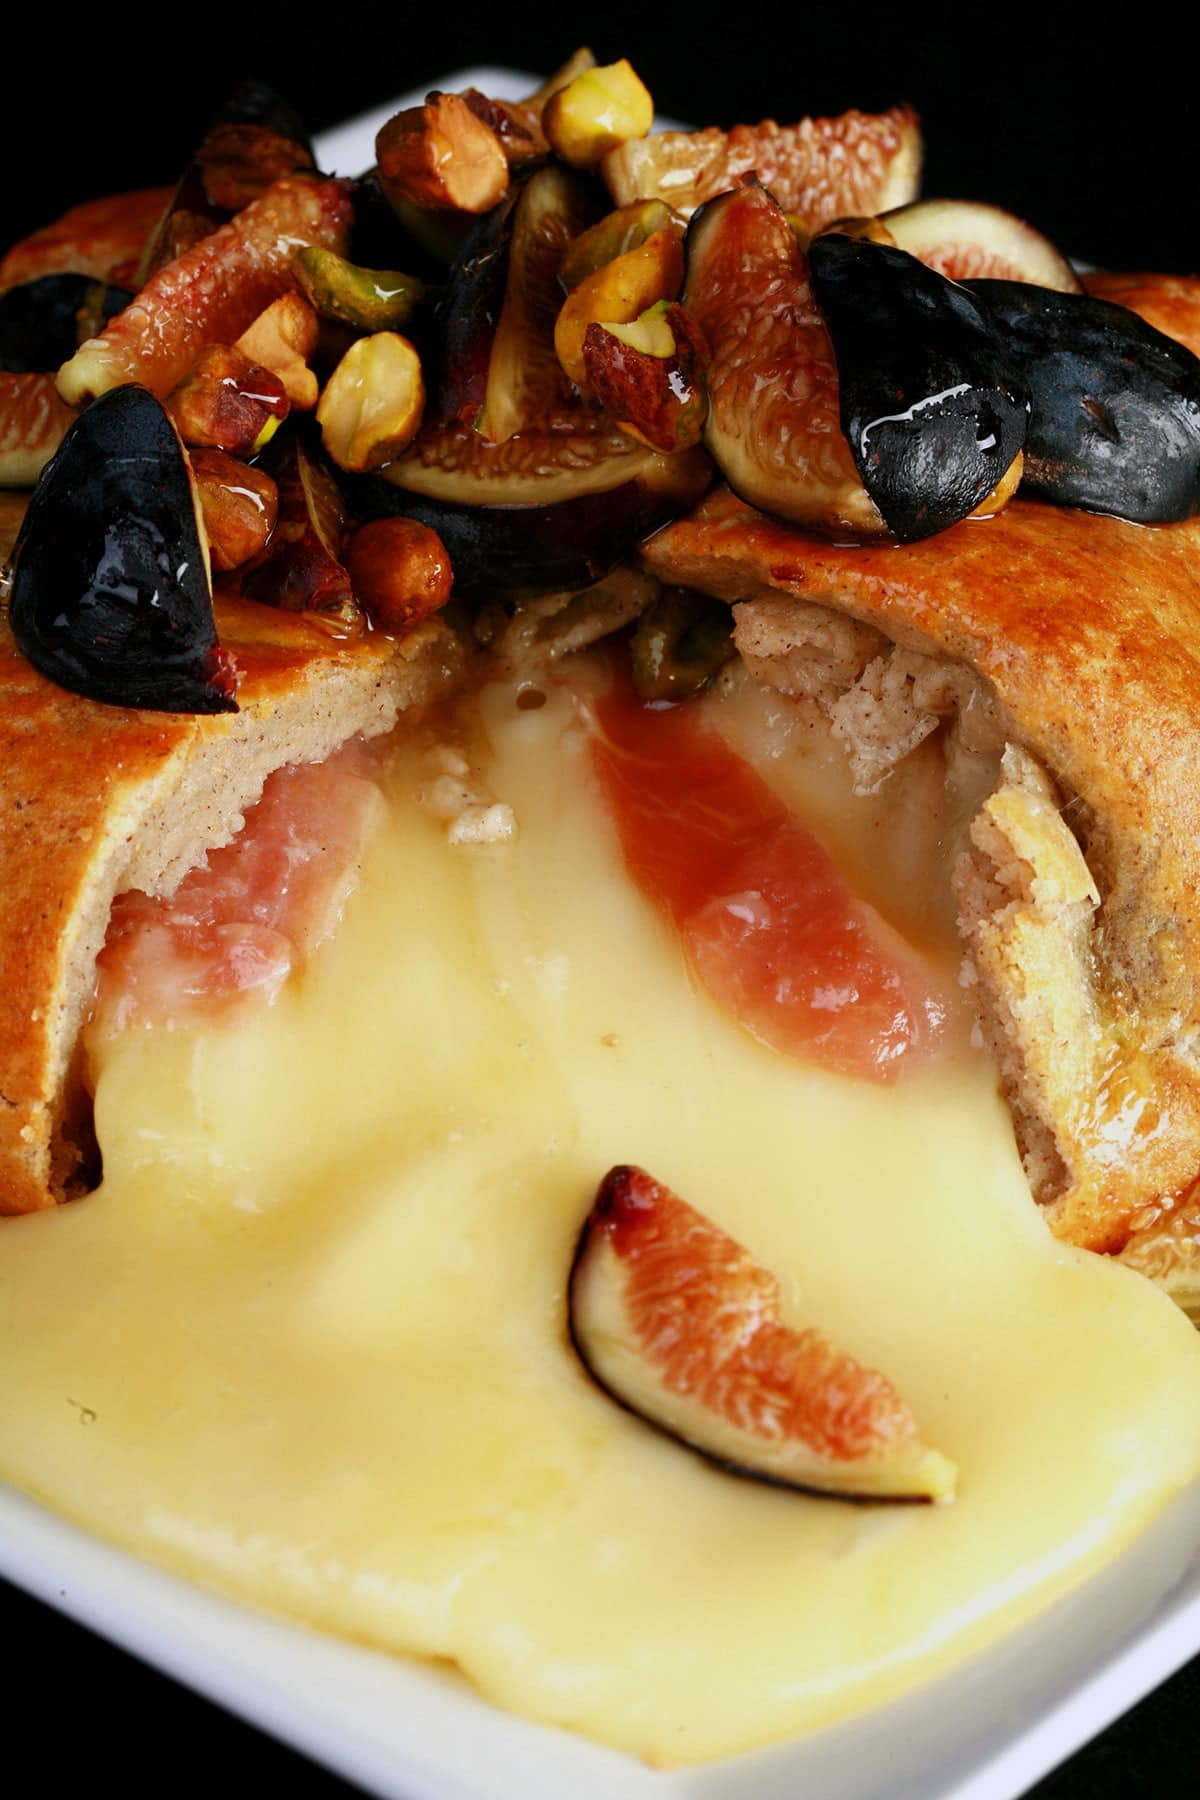 A brie en croute is broken open, with brie and bits of prosciutto pouring out. It's topped with figs, pistachios, and honey.